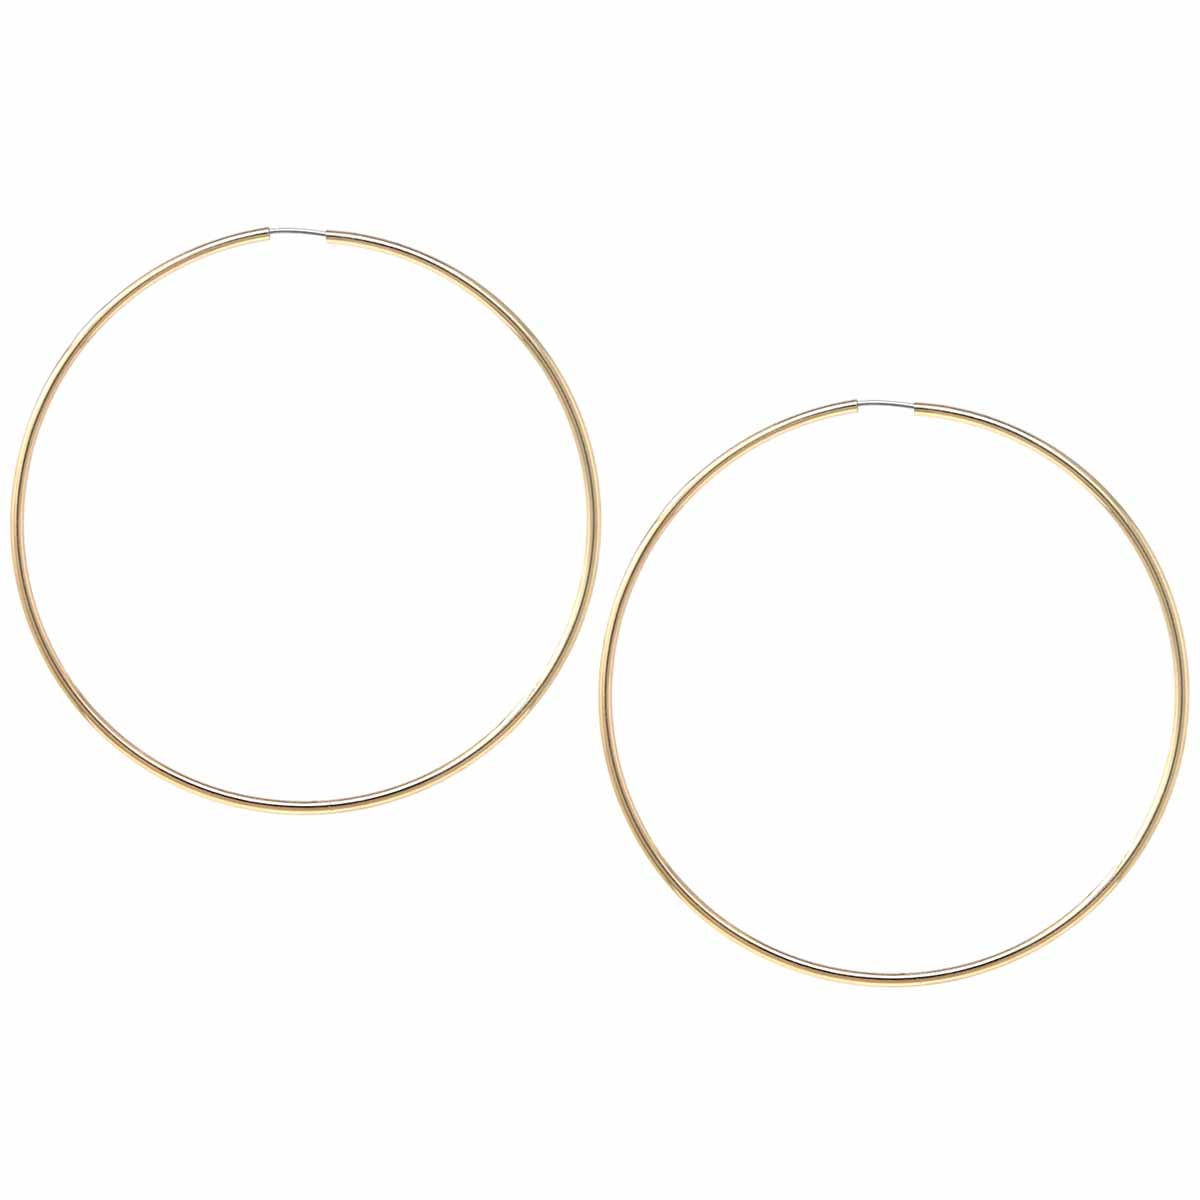 Basic Brass Endless Hoop Earrings (70 mm)